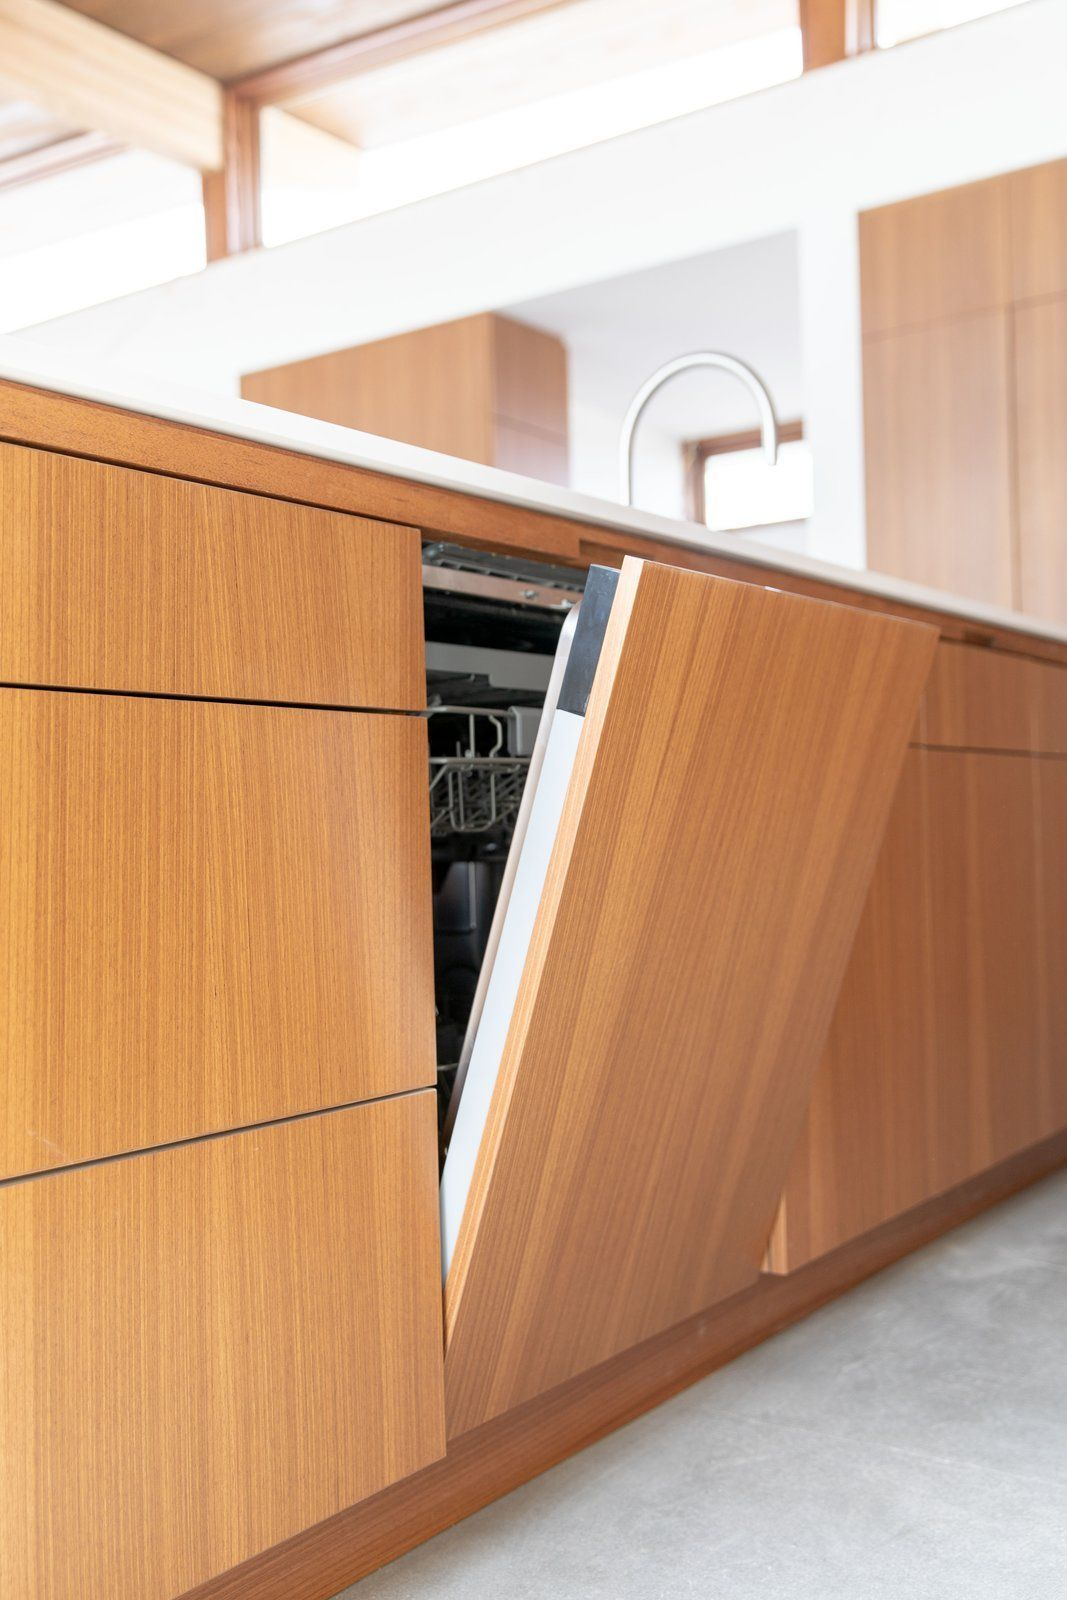 Kitchen And Dishwasher To Complement The Sleek Clean Aesthetic Of